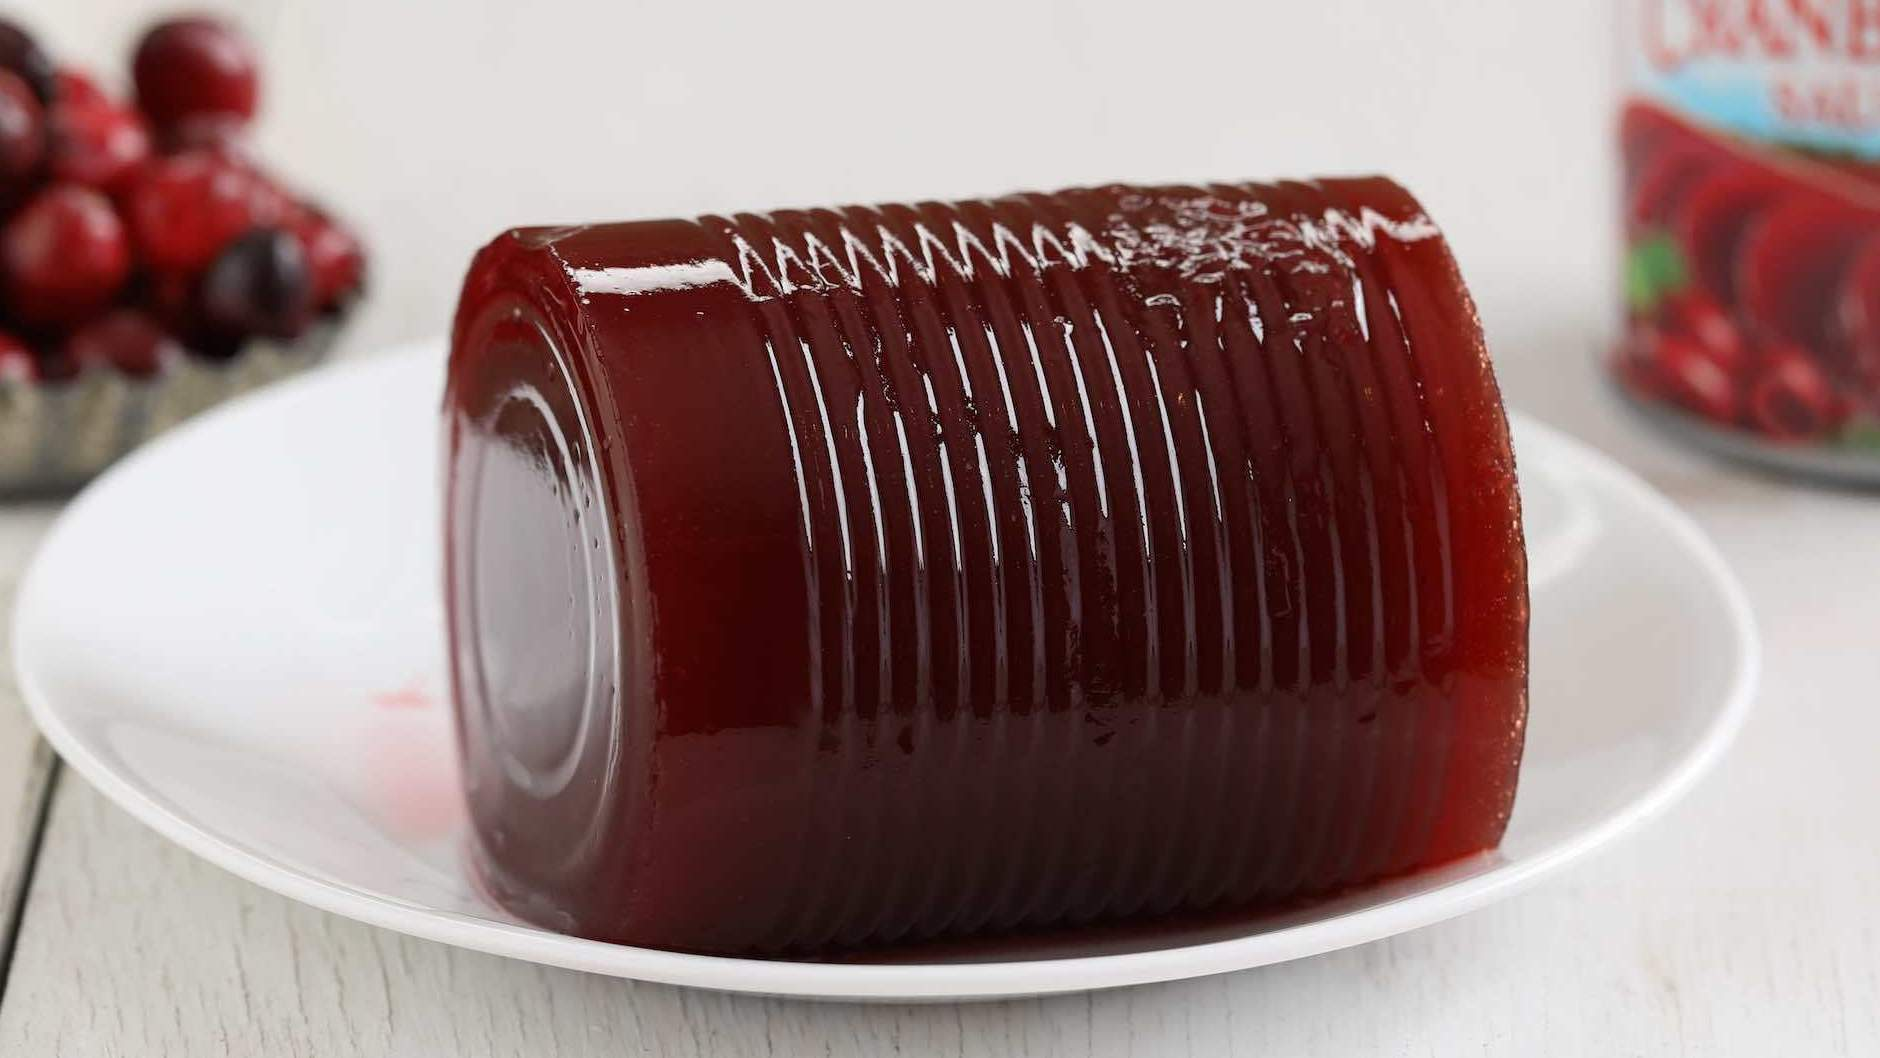 what is in canned cranberry sauce